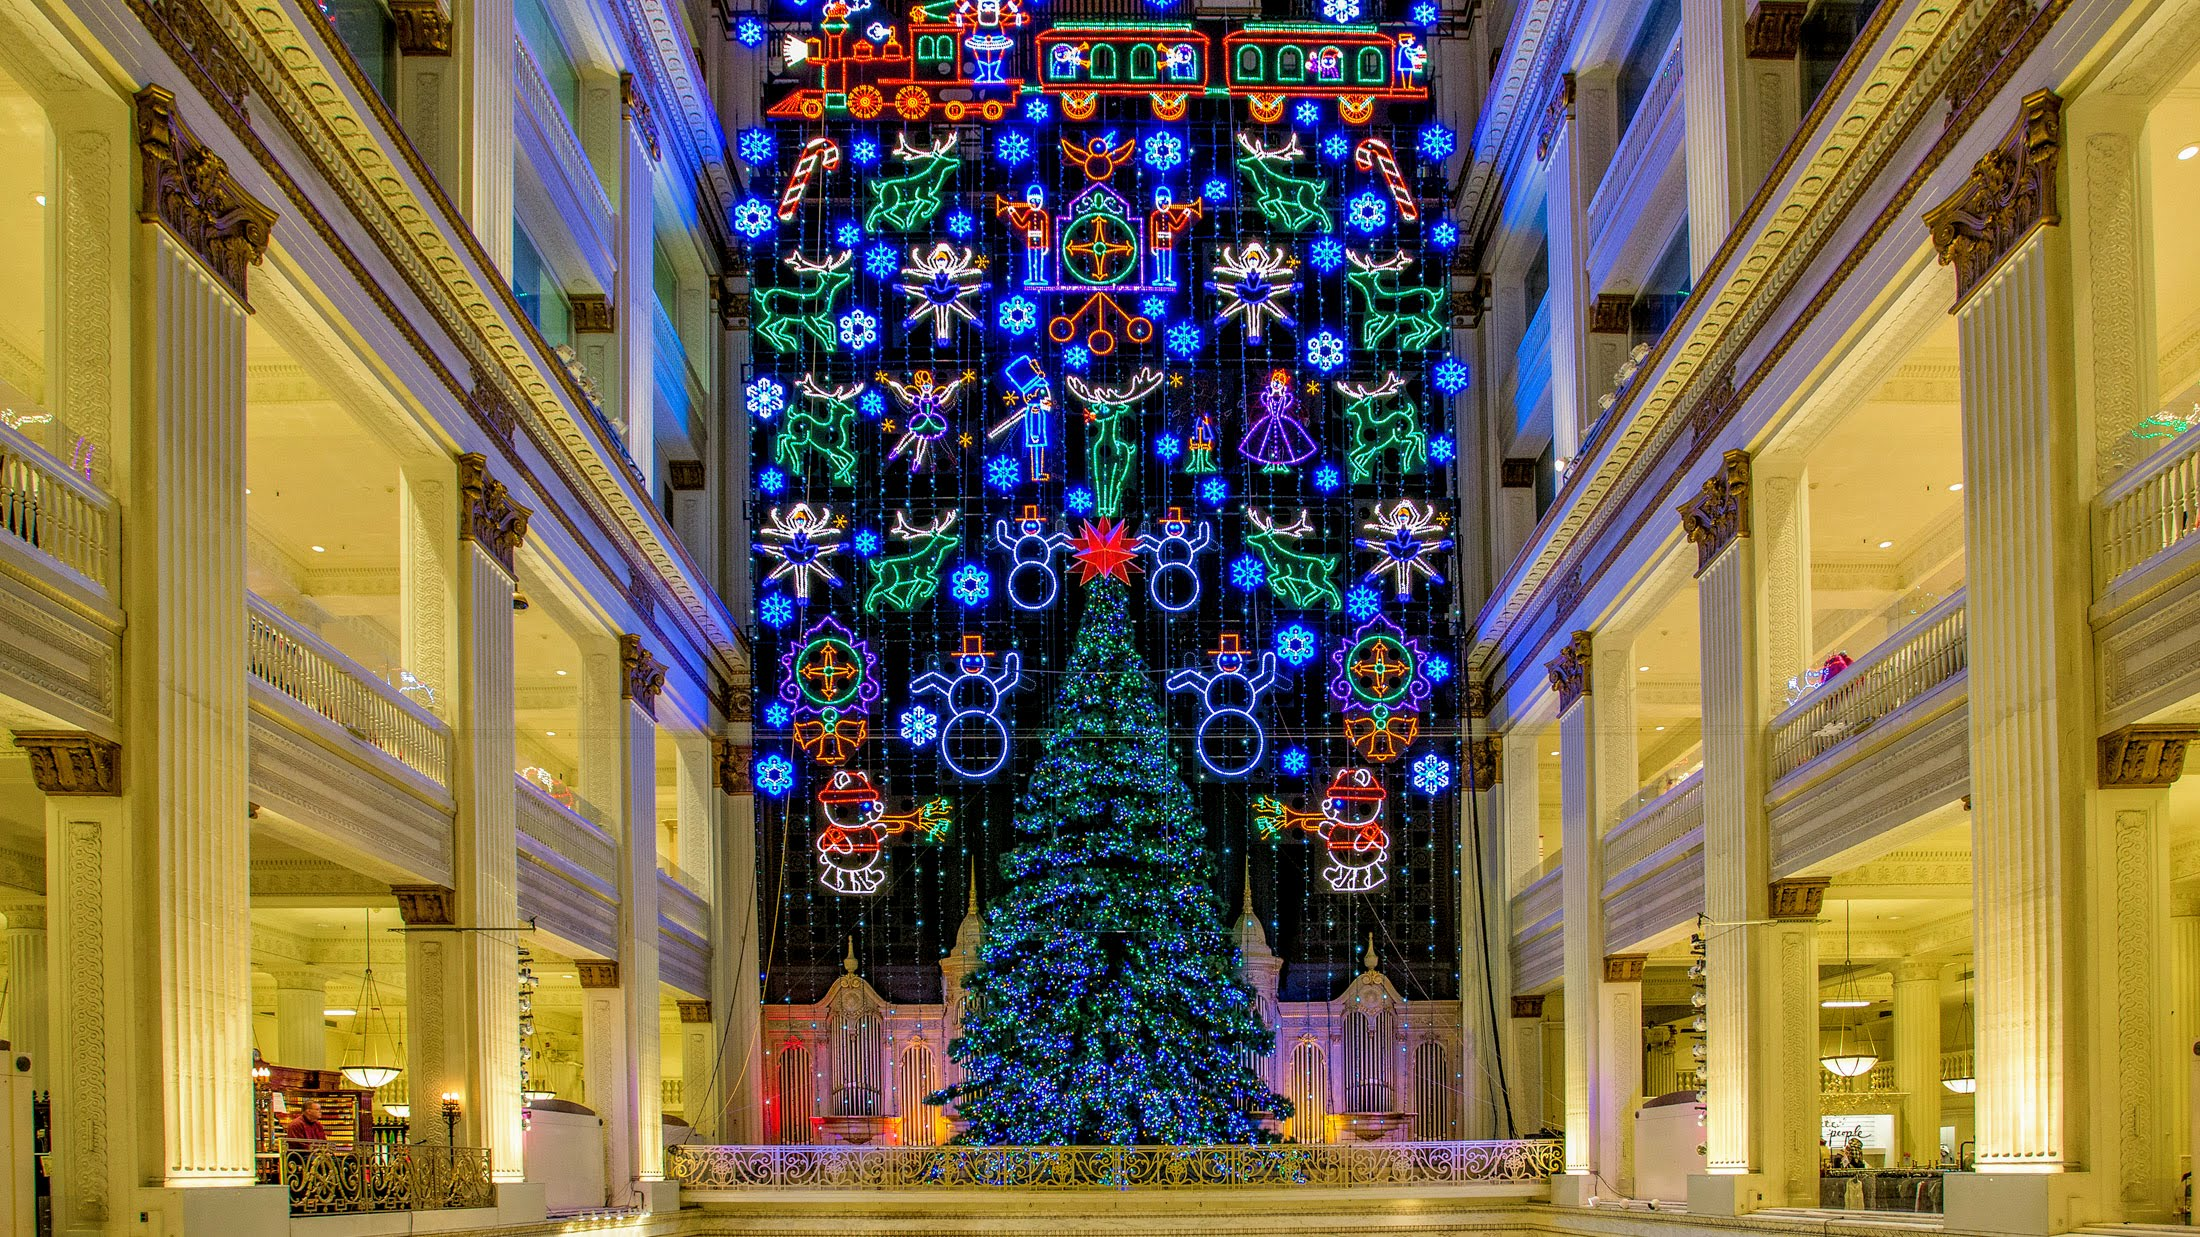 Macys Christmas Light Show Philadelphia 2020 Top Free Holiday Attractions in Philadelphia for 2019 — Visit